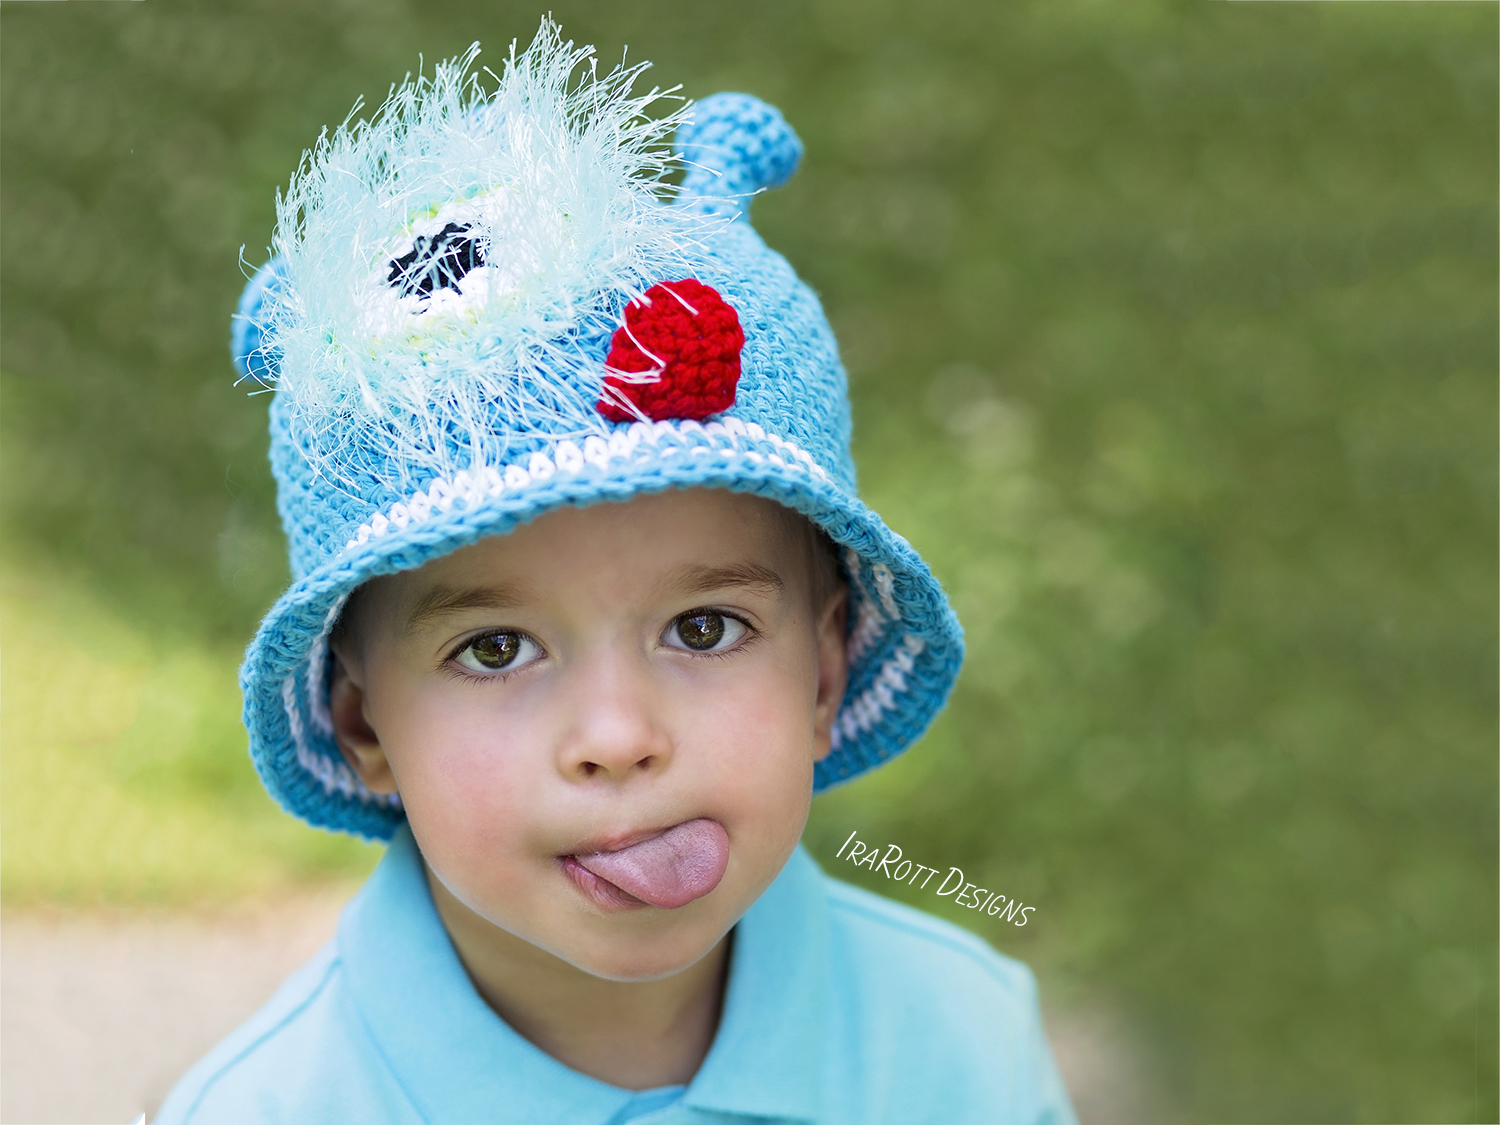 Crochet Pattern PDF for making a cute One Eye Alien Monster Sunhat for Summer